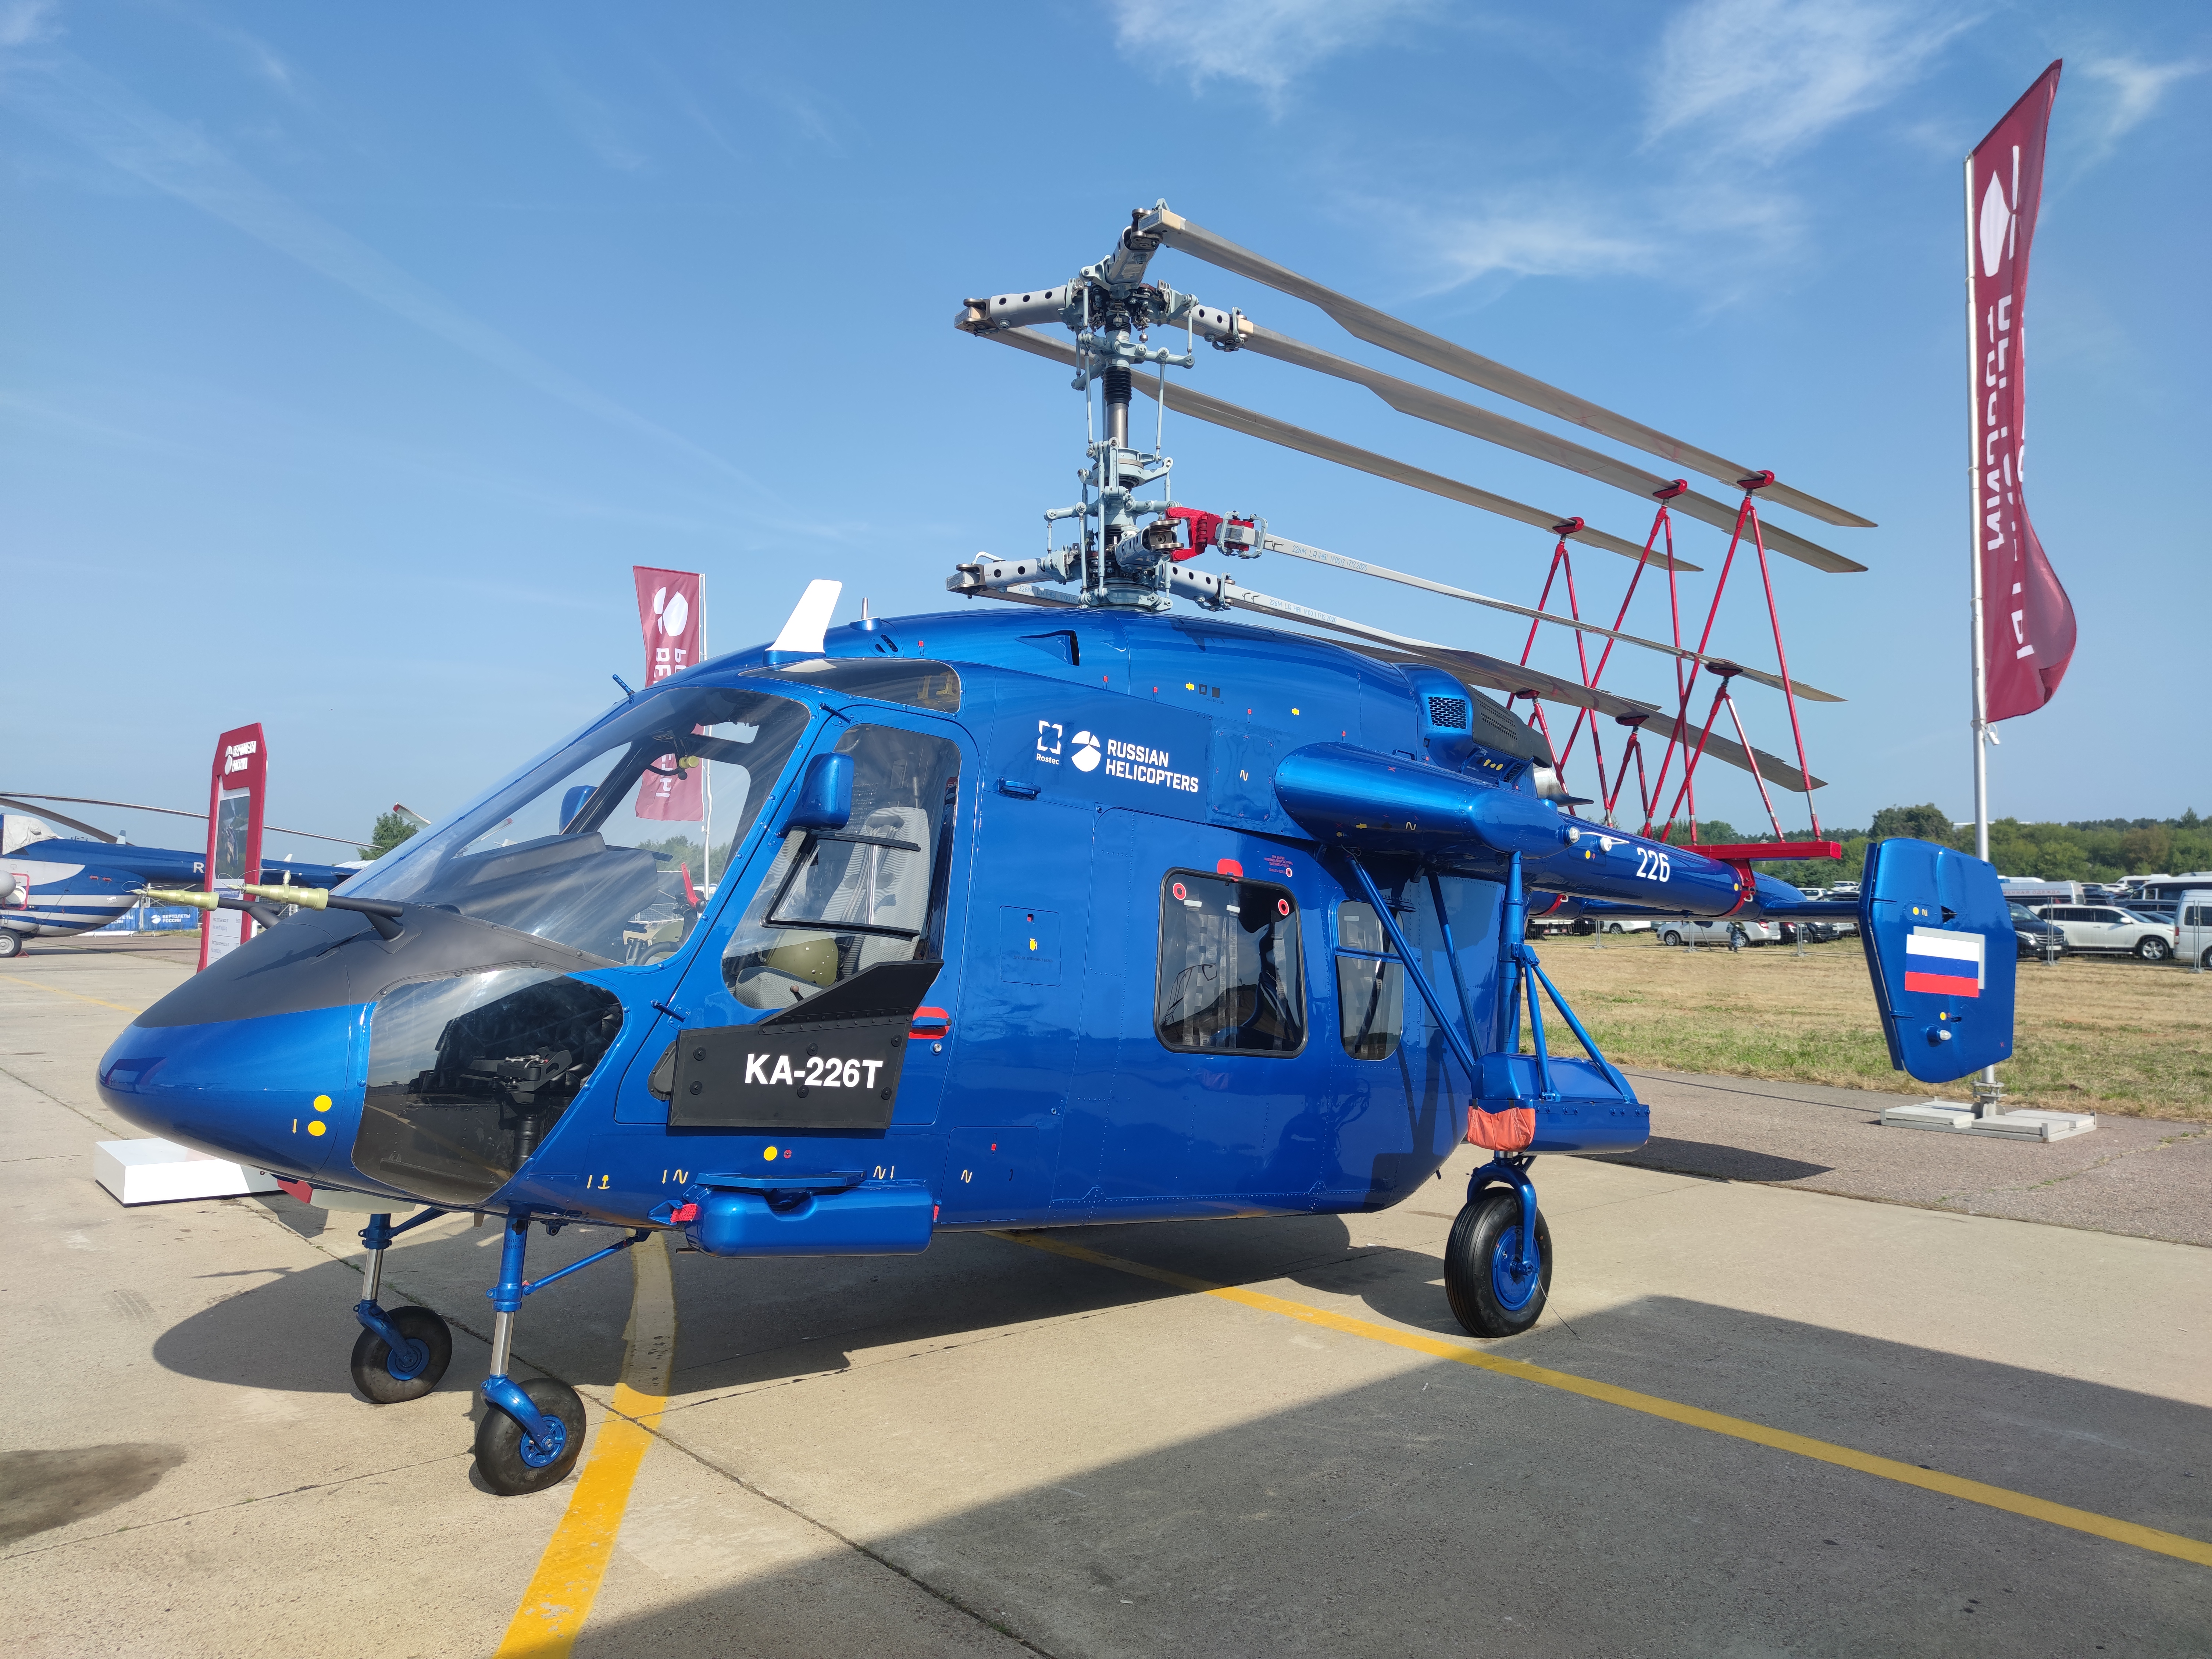 Russian Helicopters presented a new modification of the Ka-226T for the first time at MAKS-2021